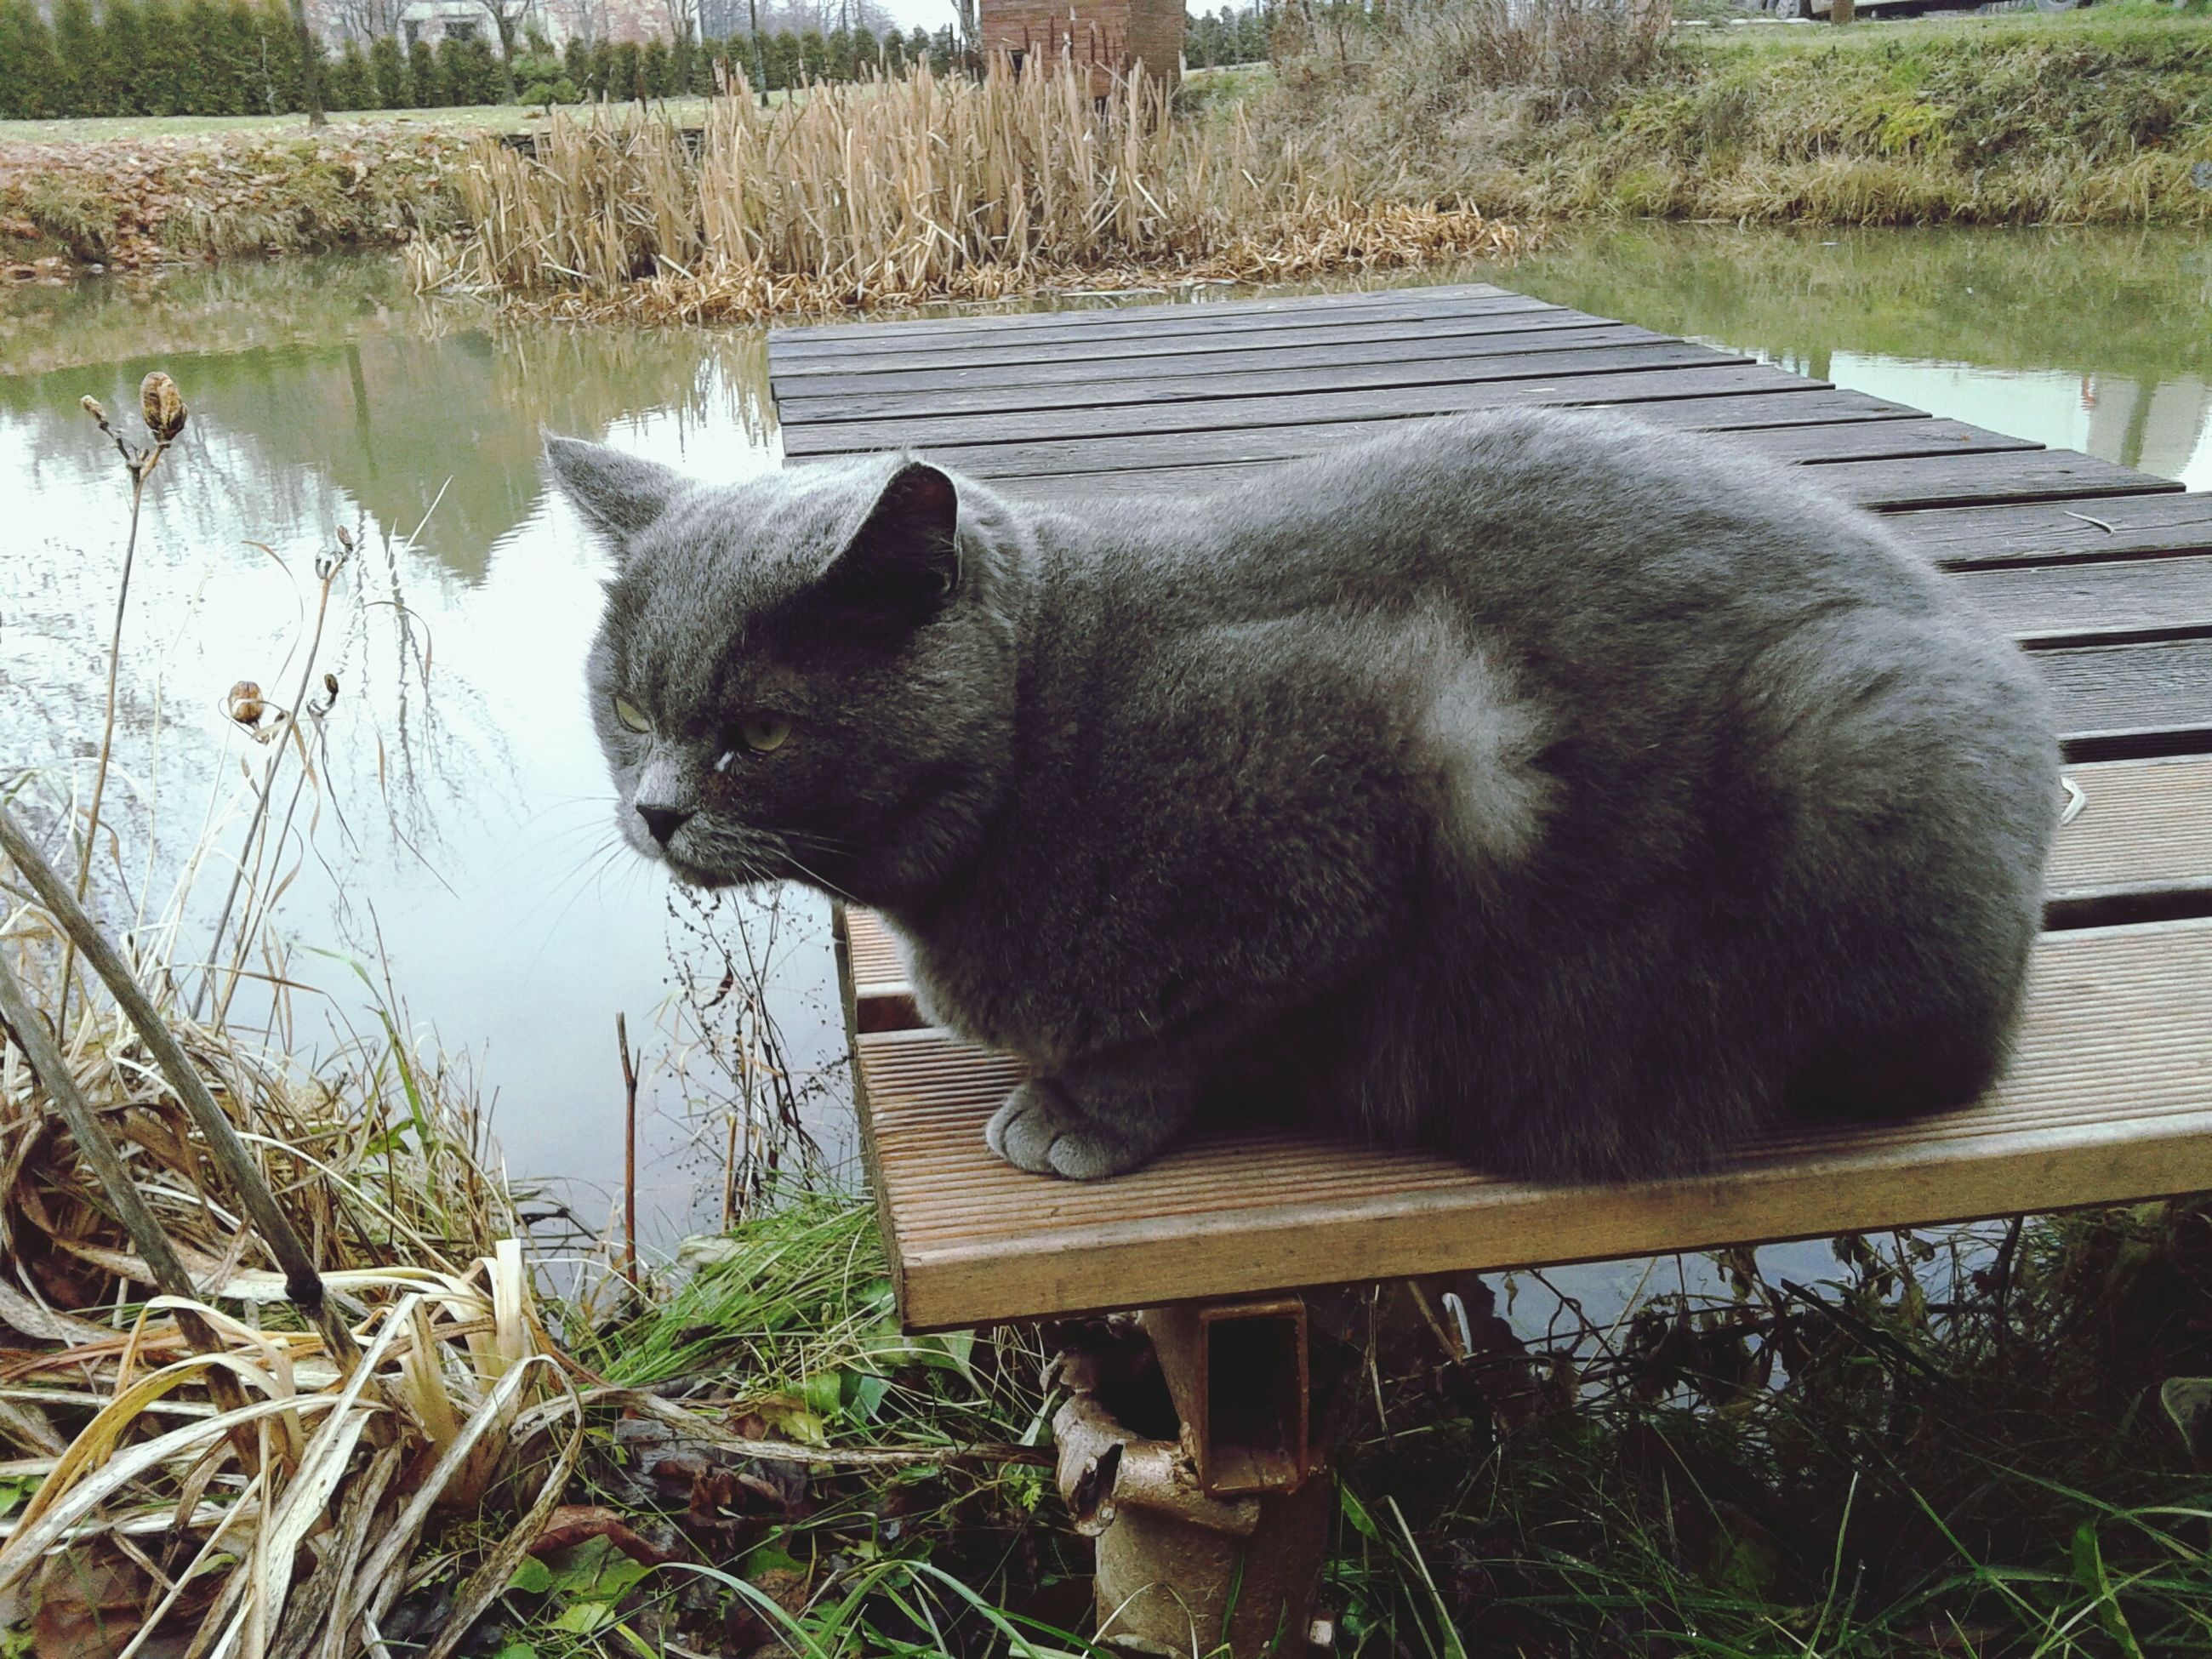 animal themes, one animal, mammal, domestic animals, pets, grass, relaxation, water, lake, domestic cat, nature, outdoors, day, sitting, field, no people, wood - material, feline, cat, plant